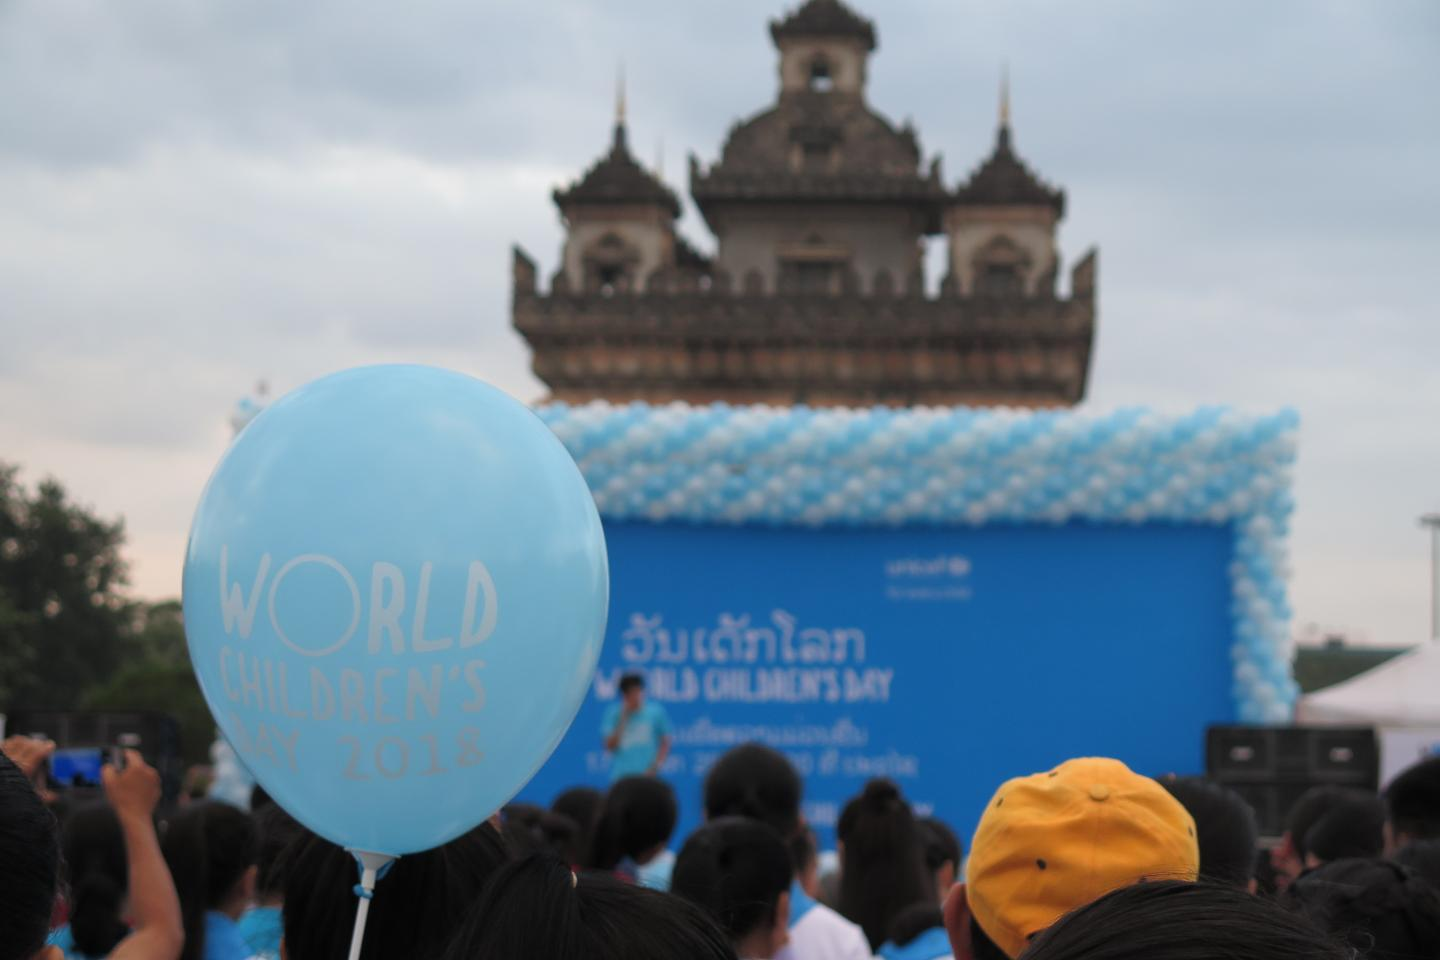 World Children's Day in Laos: a successful first time